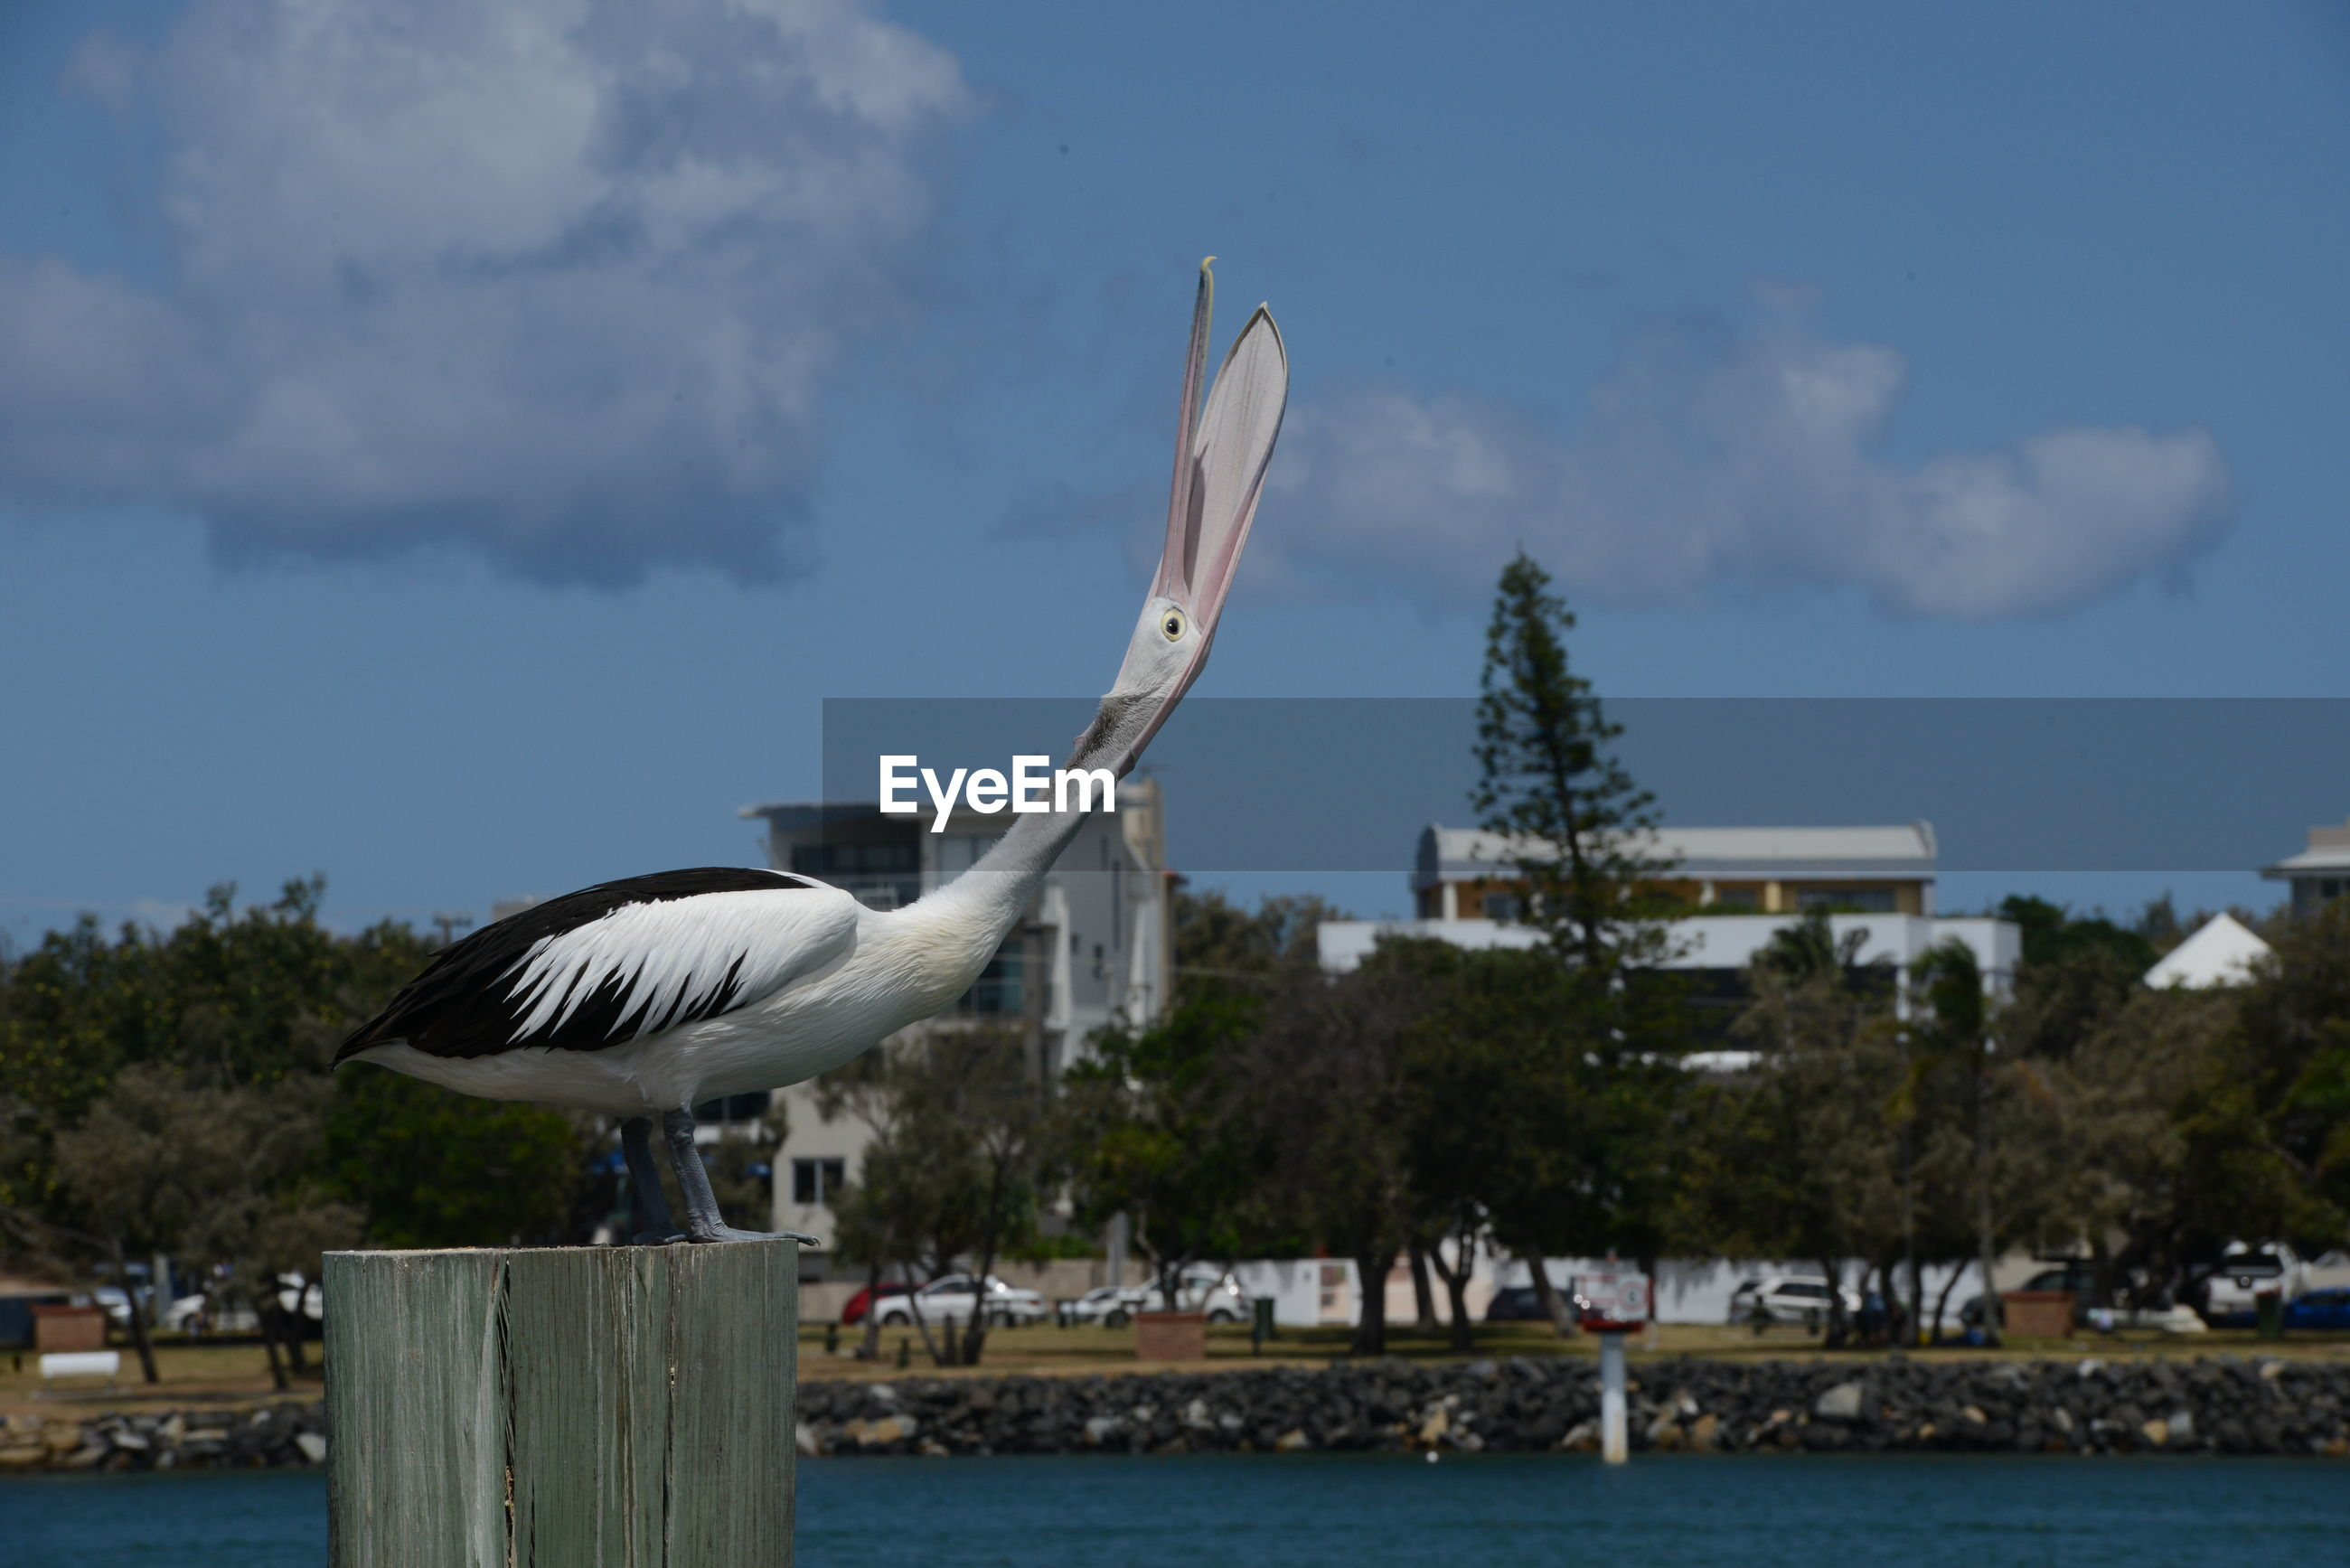 SEAGULL FLYING OVER WOODEN POST AGAINST BUILDING